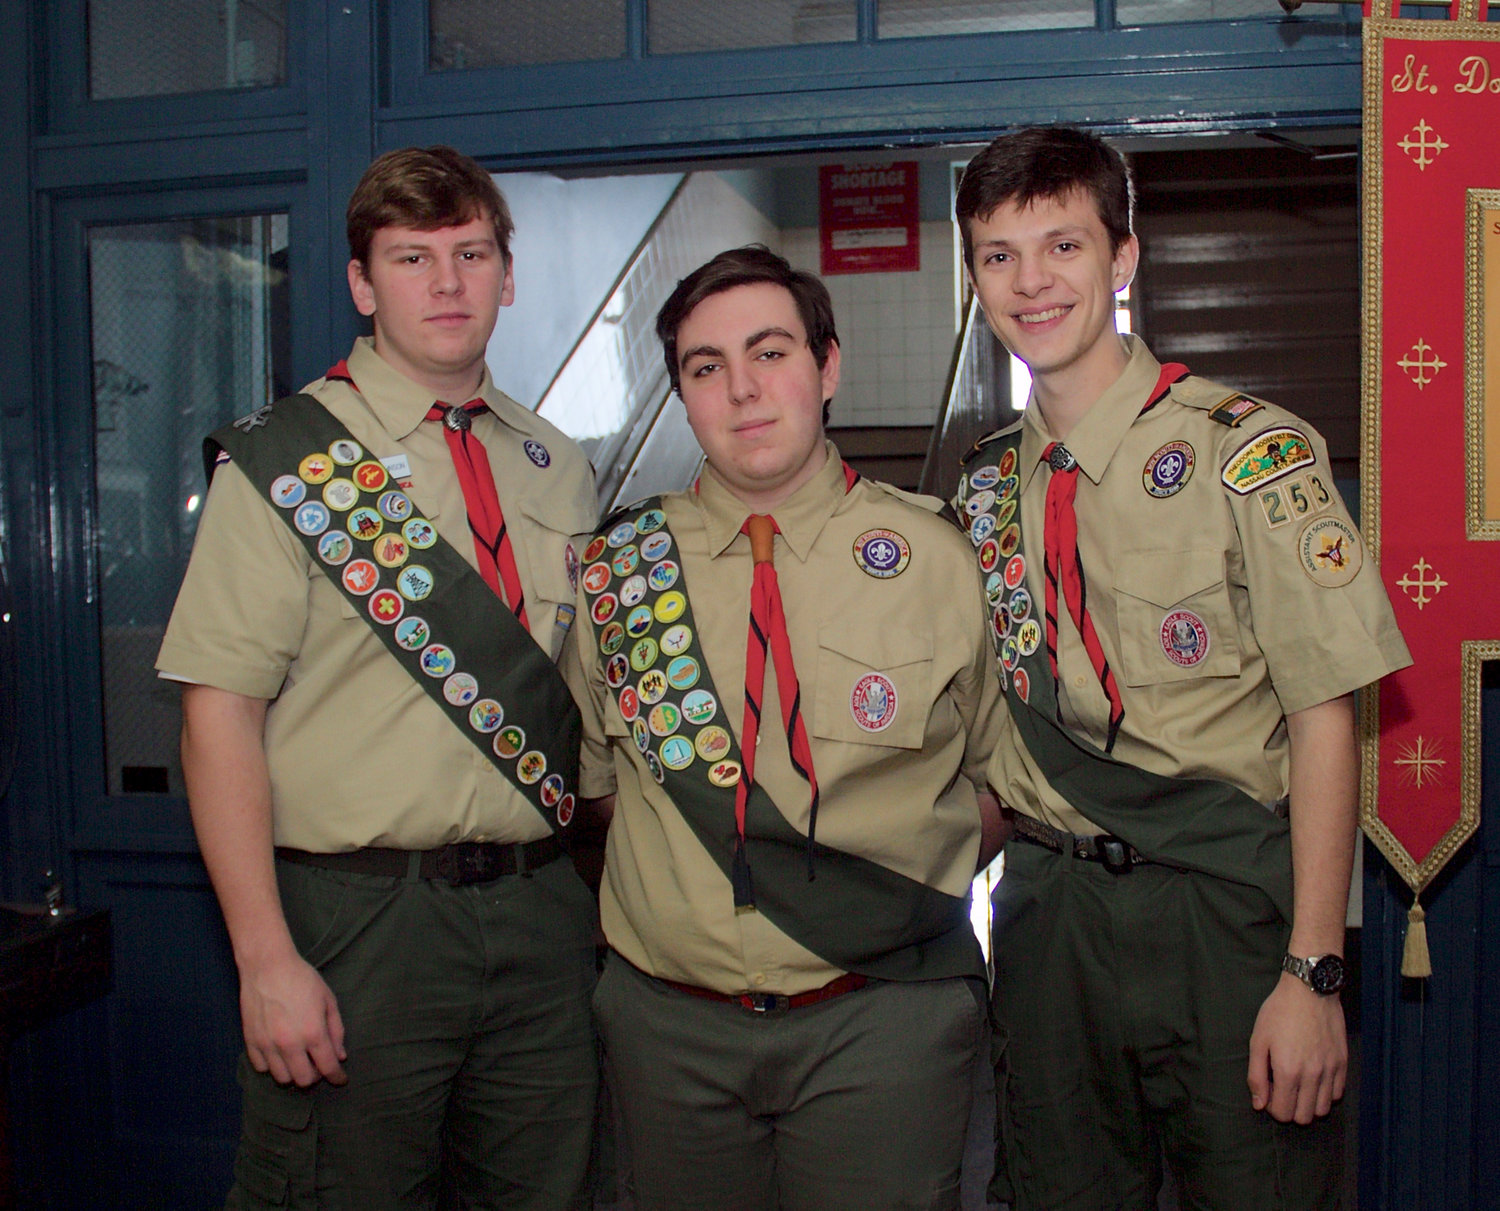 Friends  Kristofer Johnson, far left, Steven Masiakos and Christopher Syrett before the Eagle ceremony.